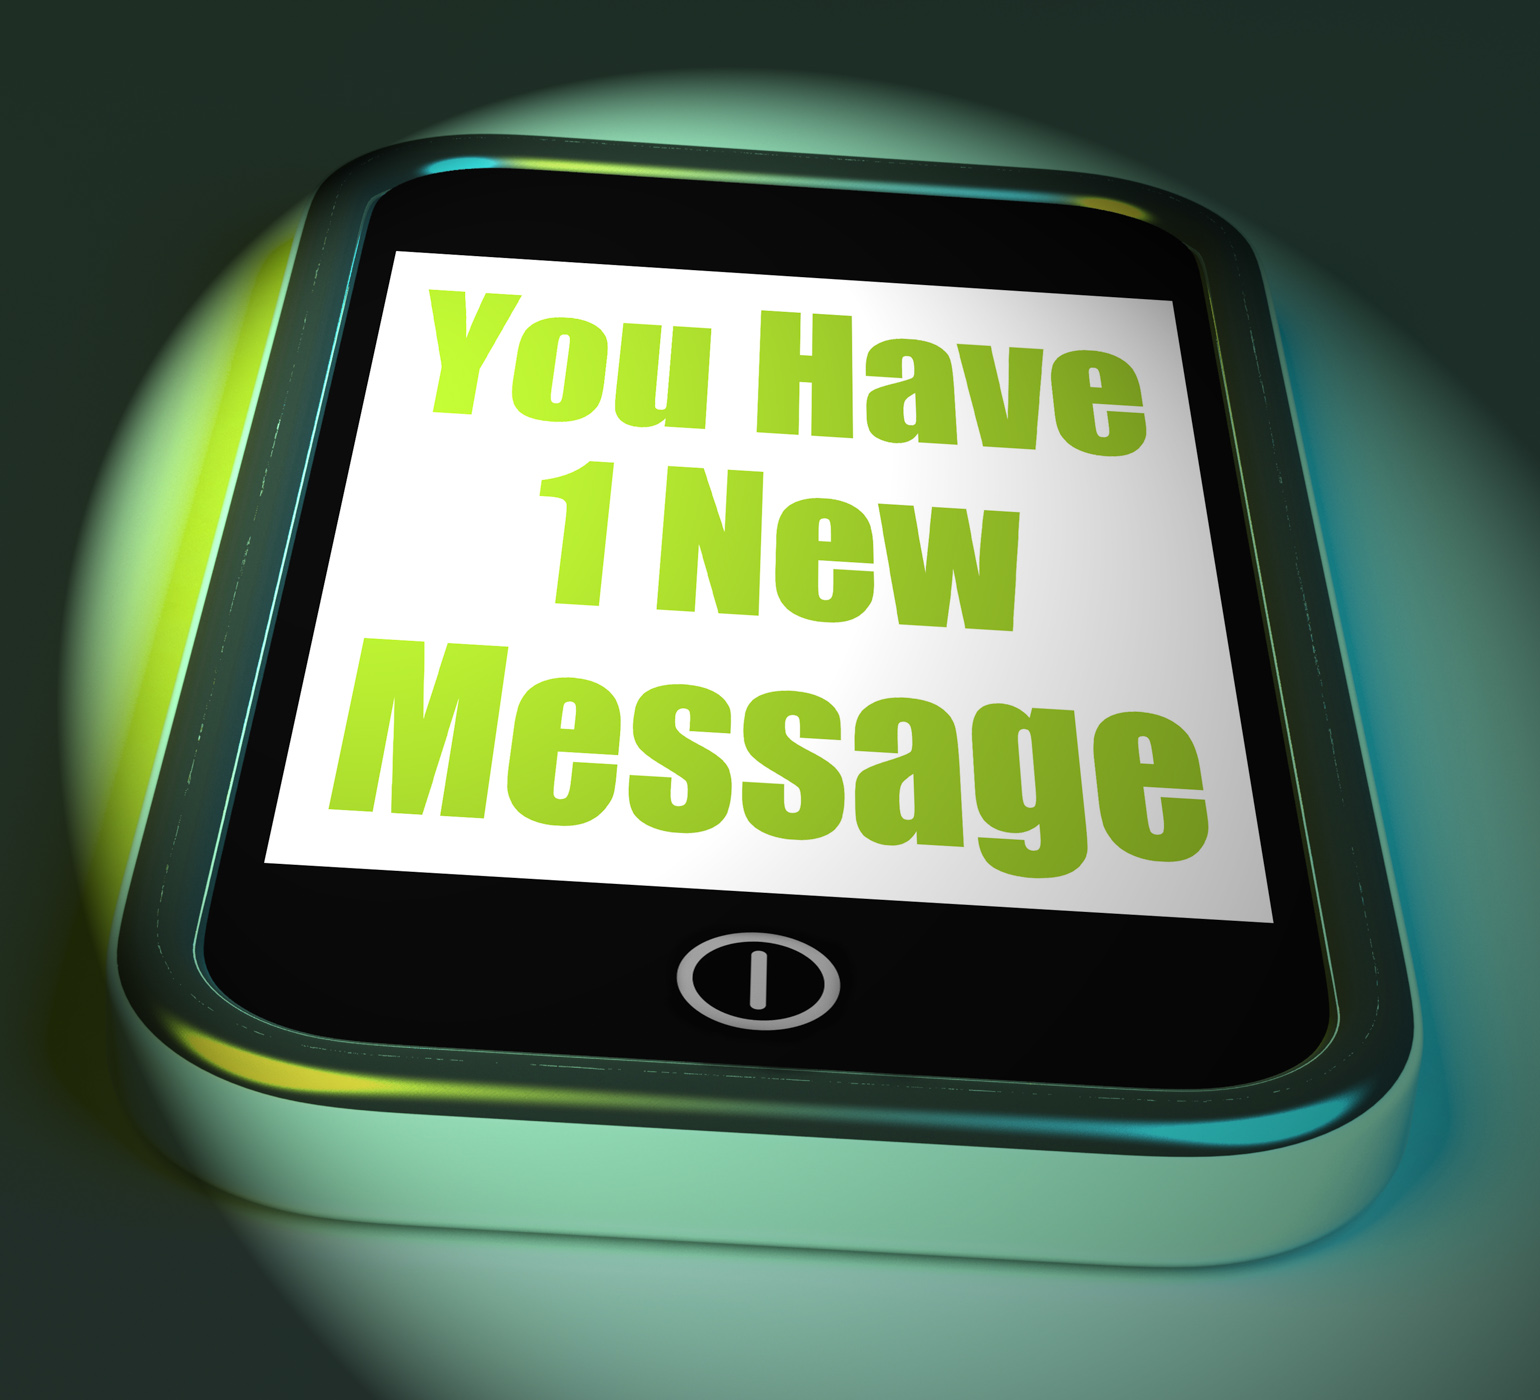 You have 1 new message on phone displays new mail photo